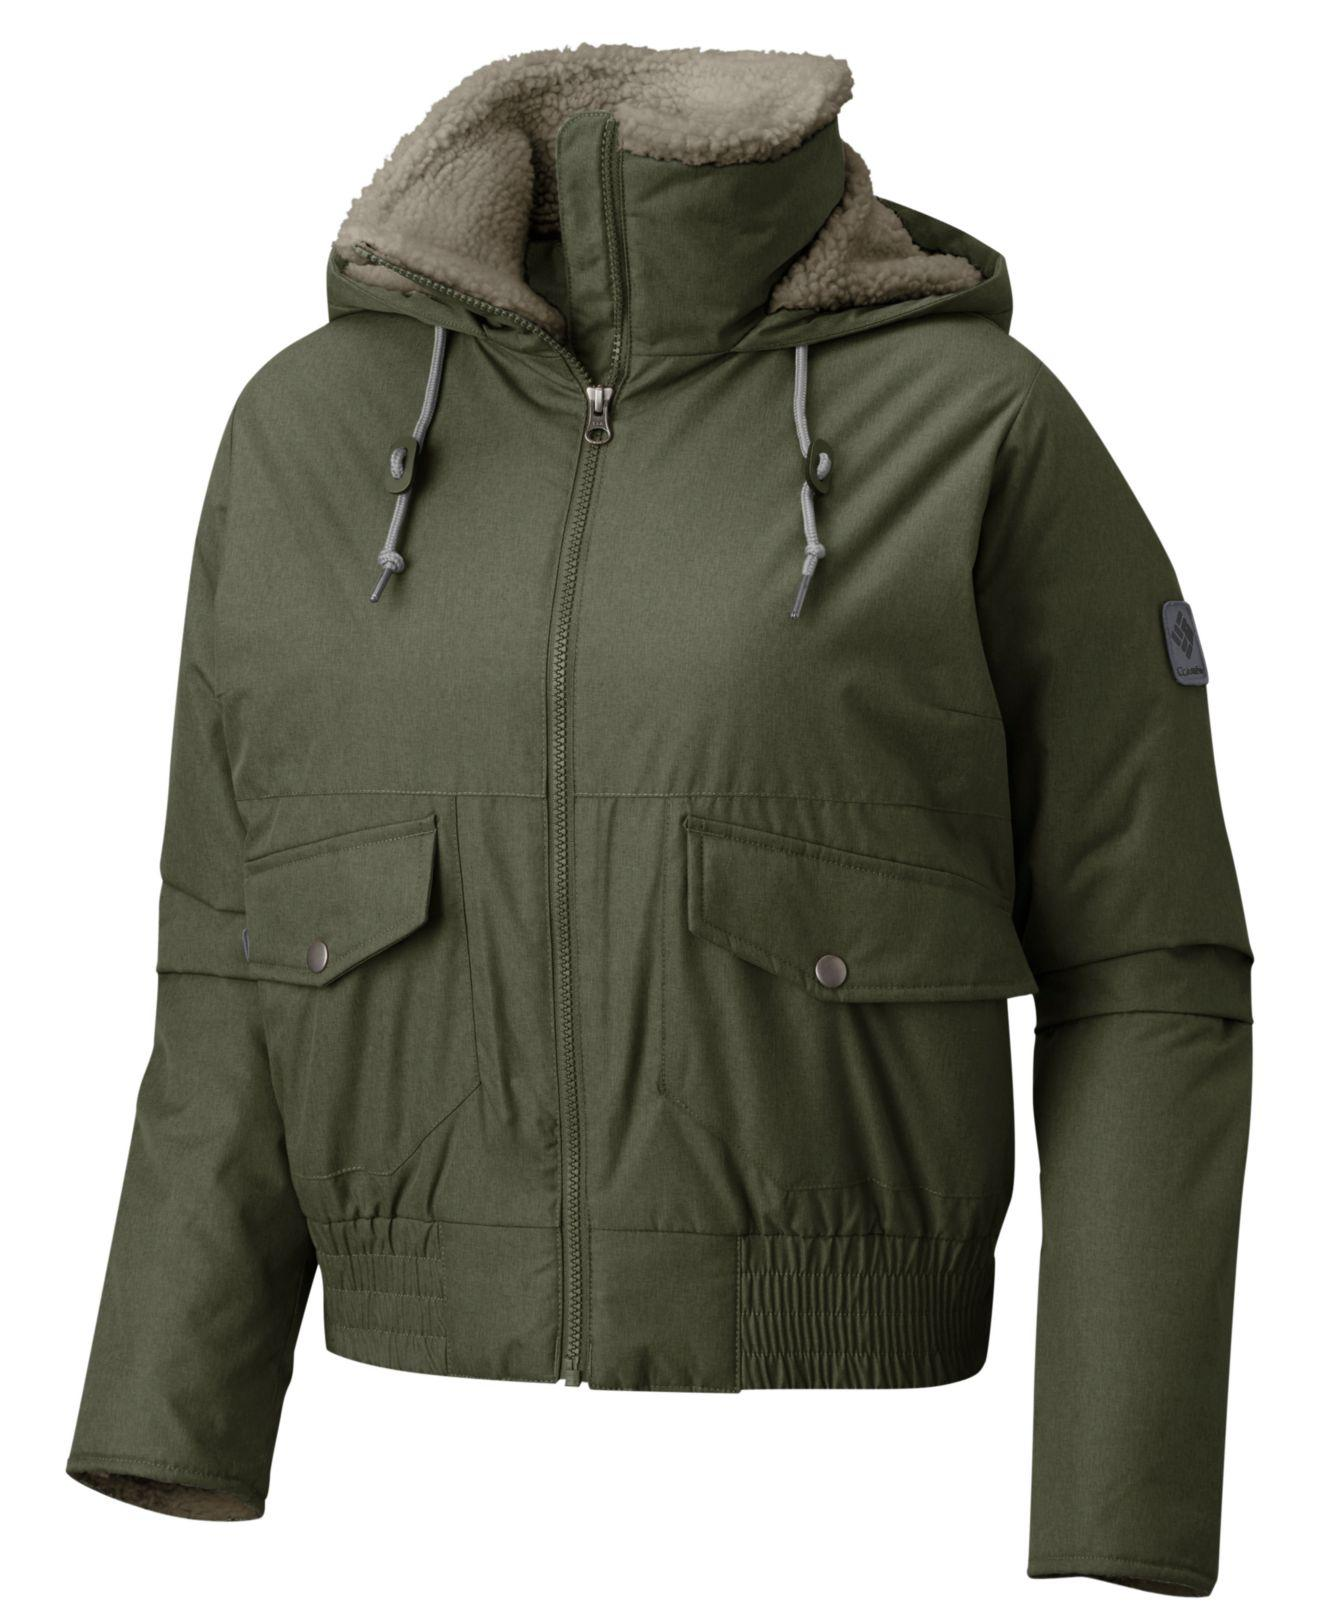 305fc0532 Columbia Fleece-lined Beacon Brooketm Bomber Jacket in Green - Save ...